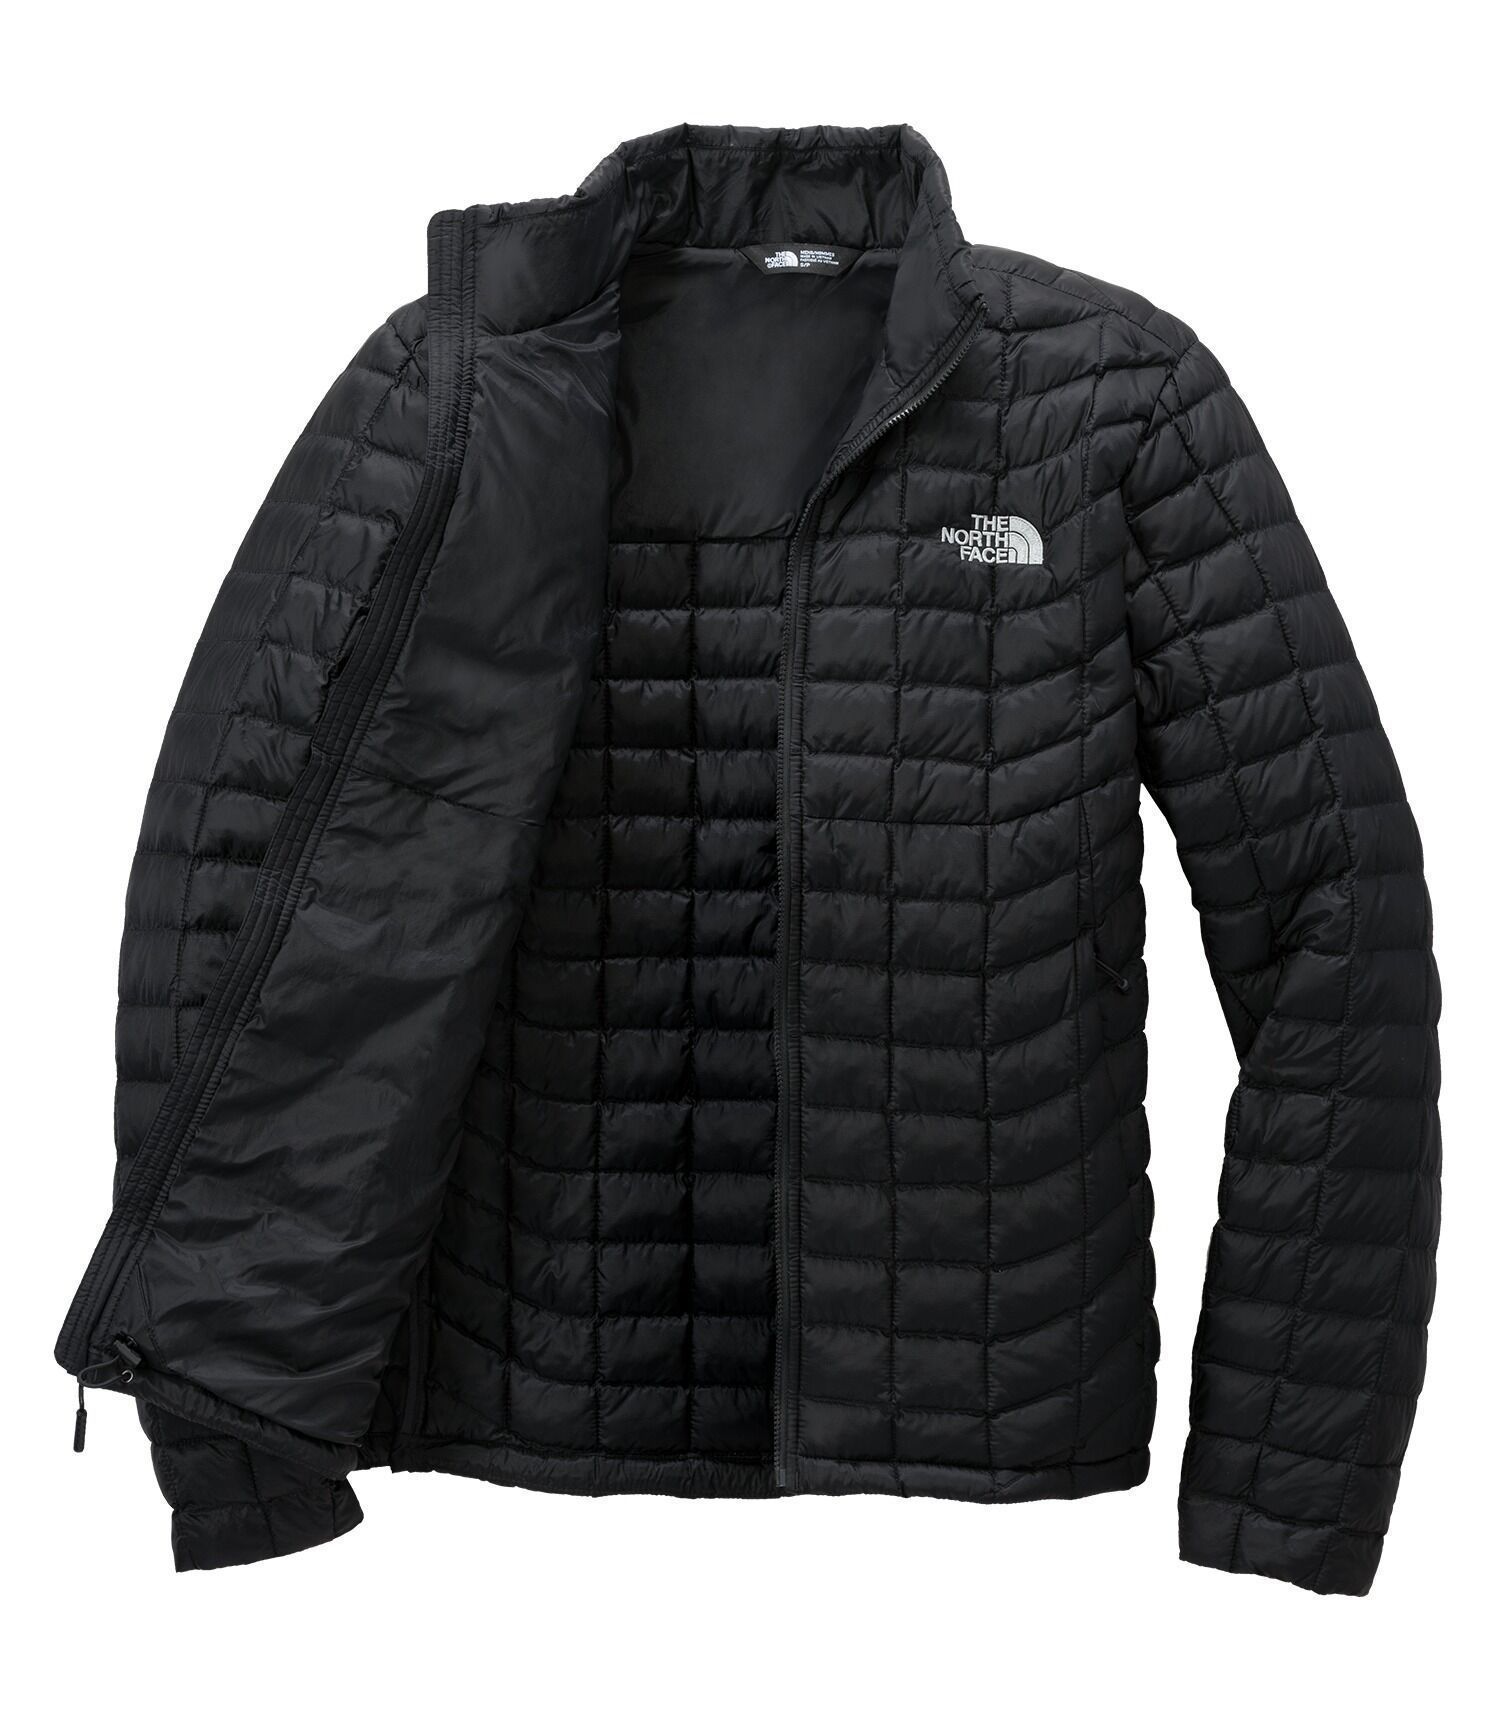 THE NORTH FACE THERMOBALL TREKKER